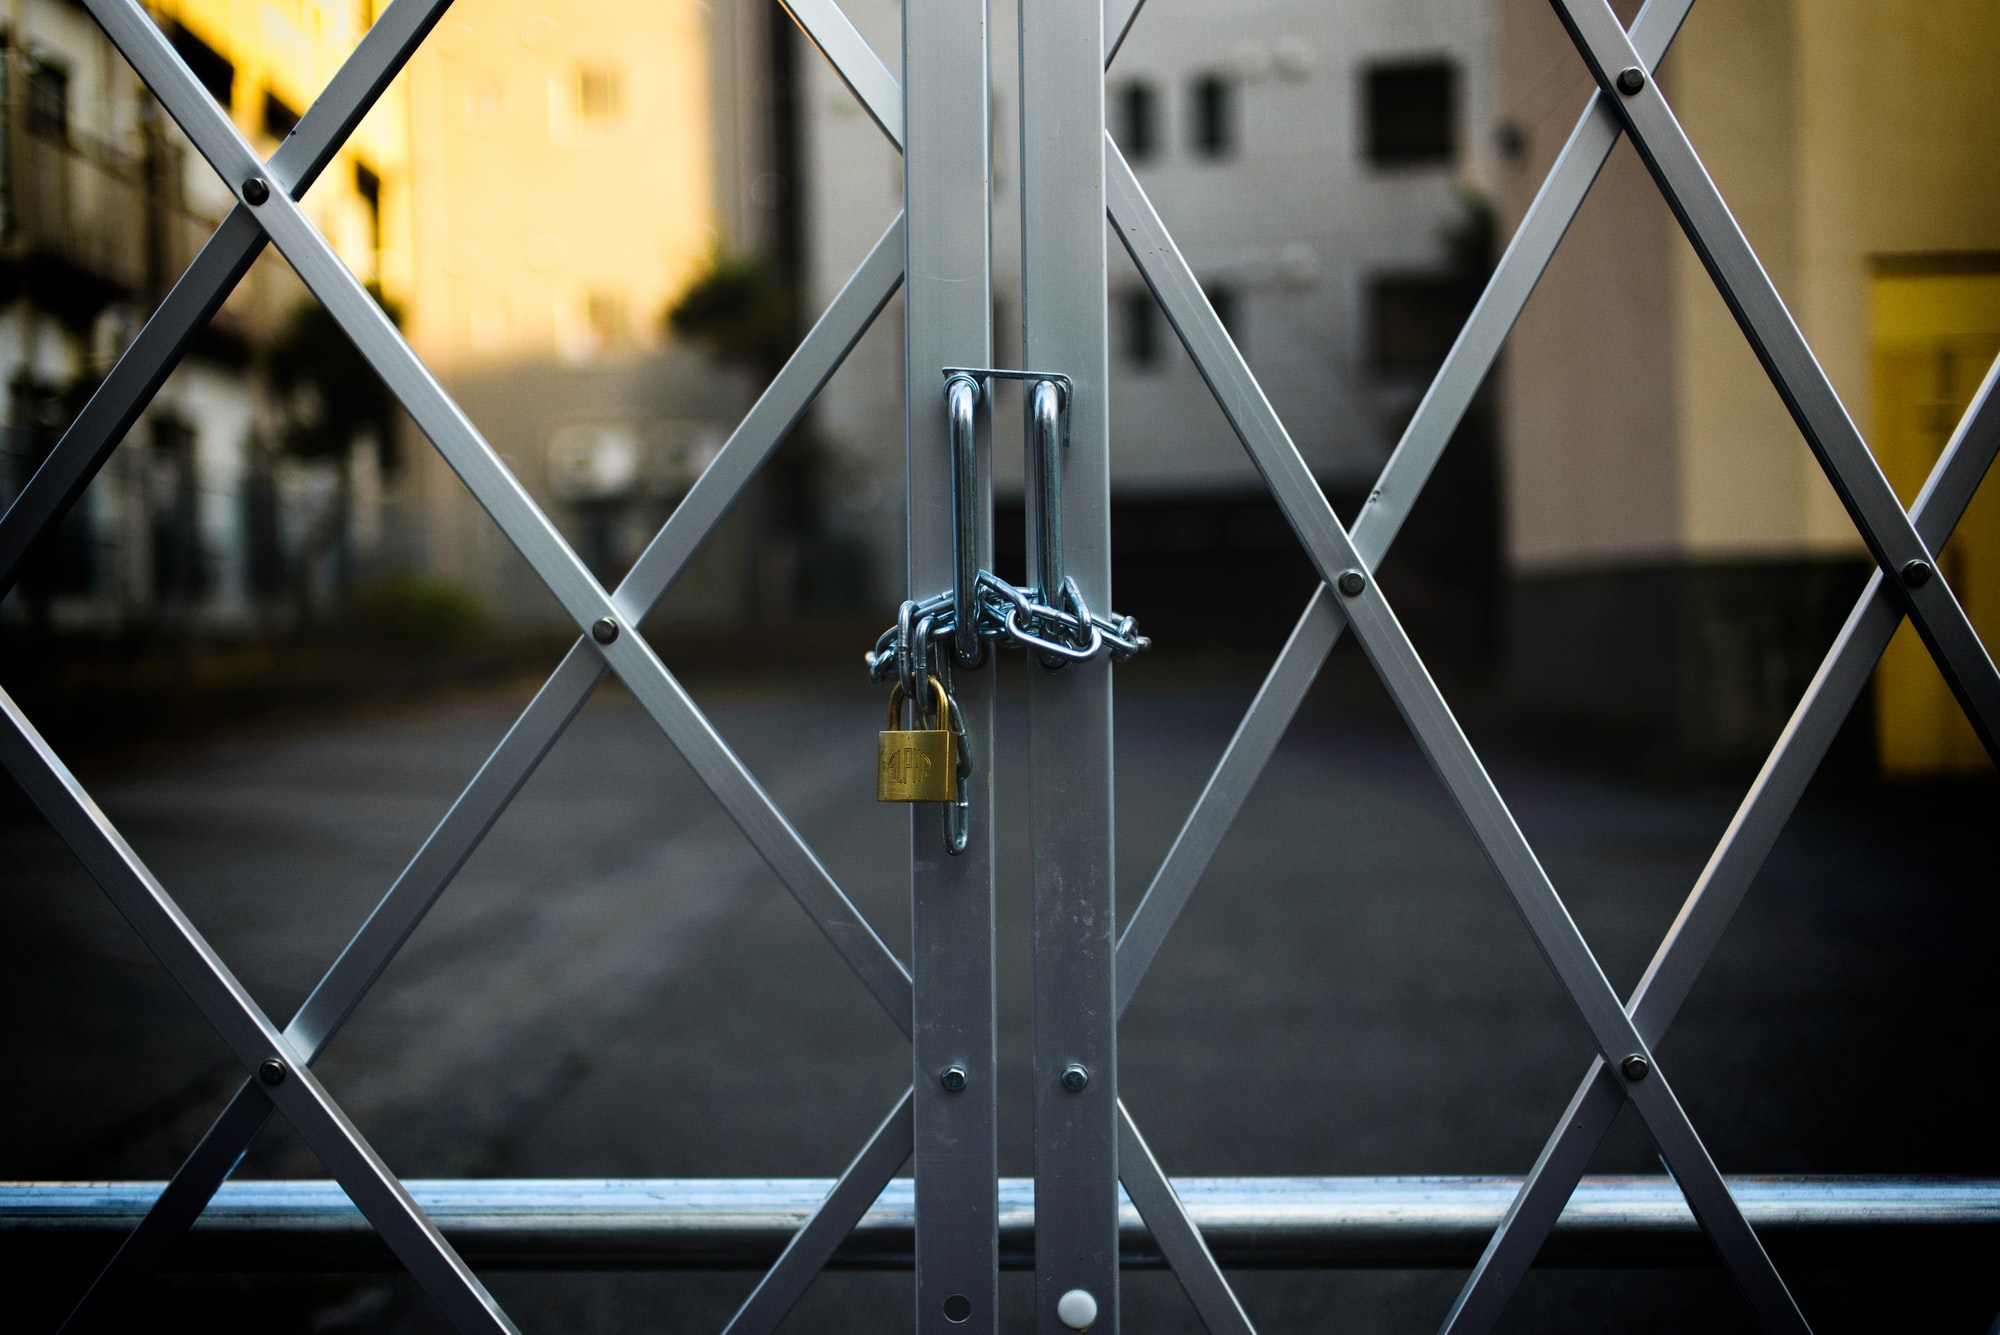 A padlock and chain are used to close a metal gate.